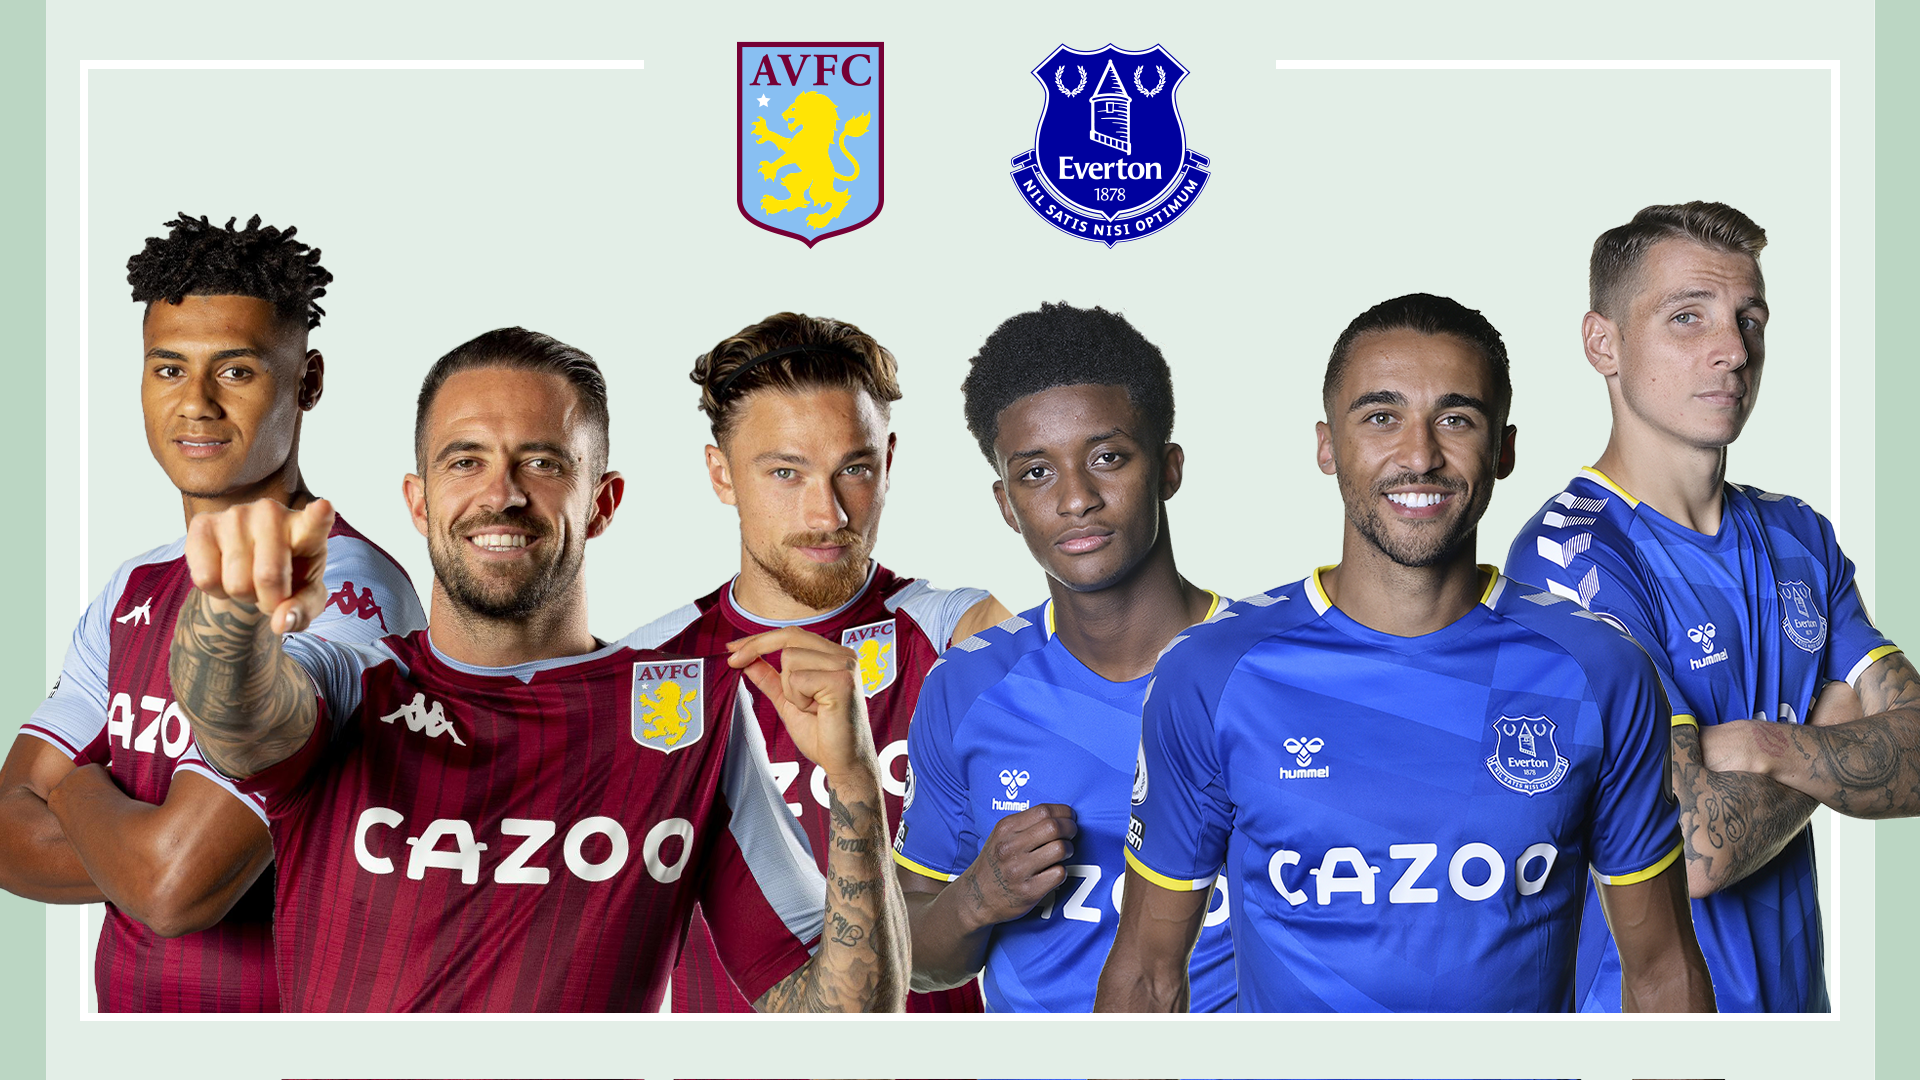 Aston Villa and Everton players on a green background.